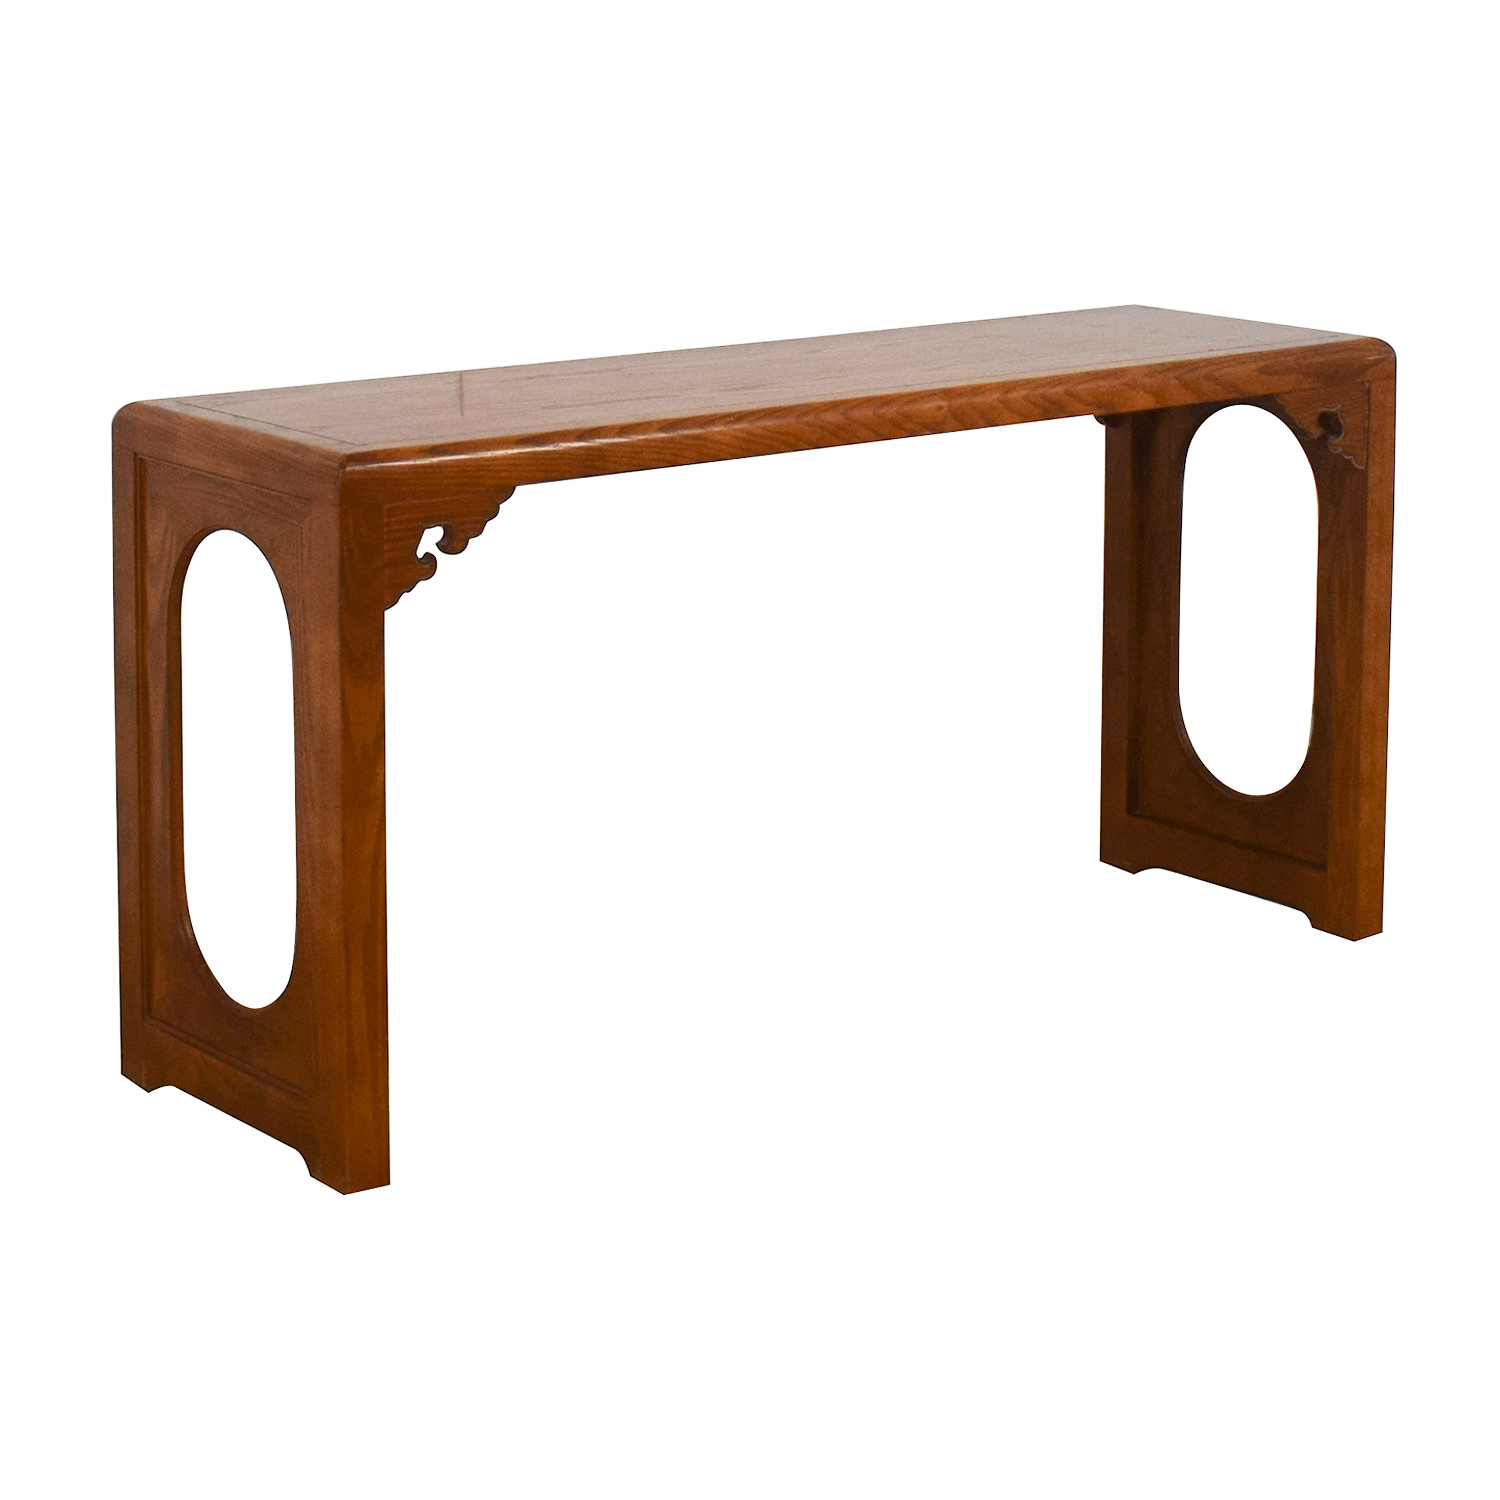 87% OFF   Vintage Entryway Console Table / Tables